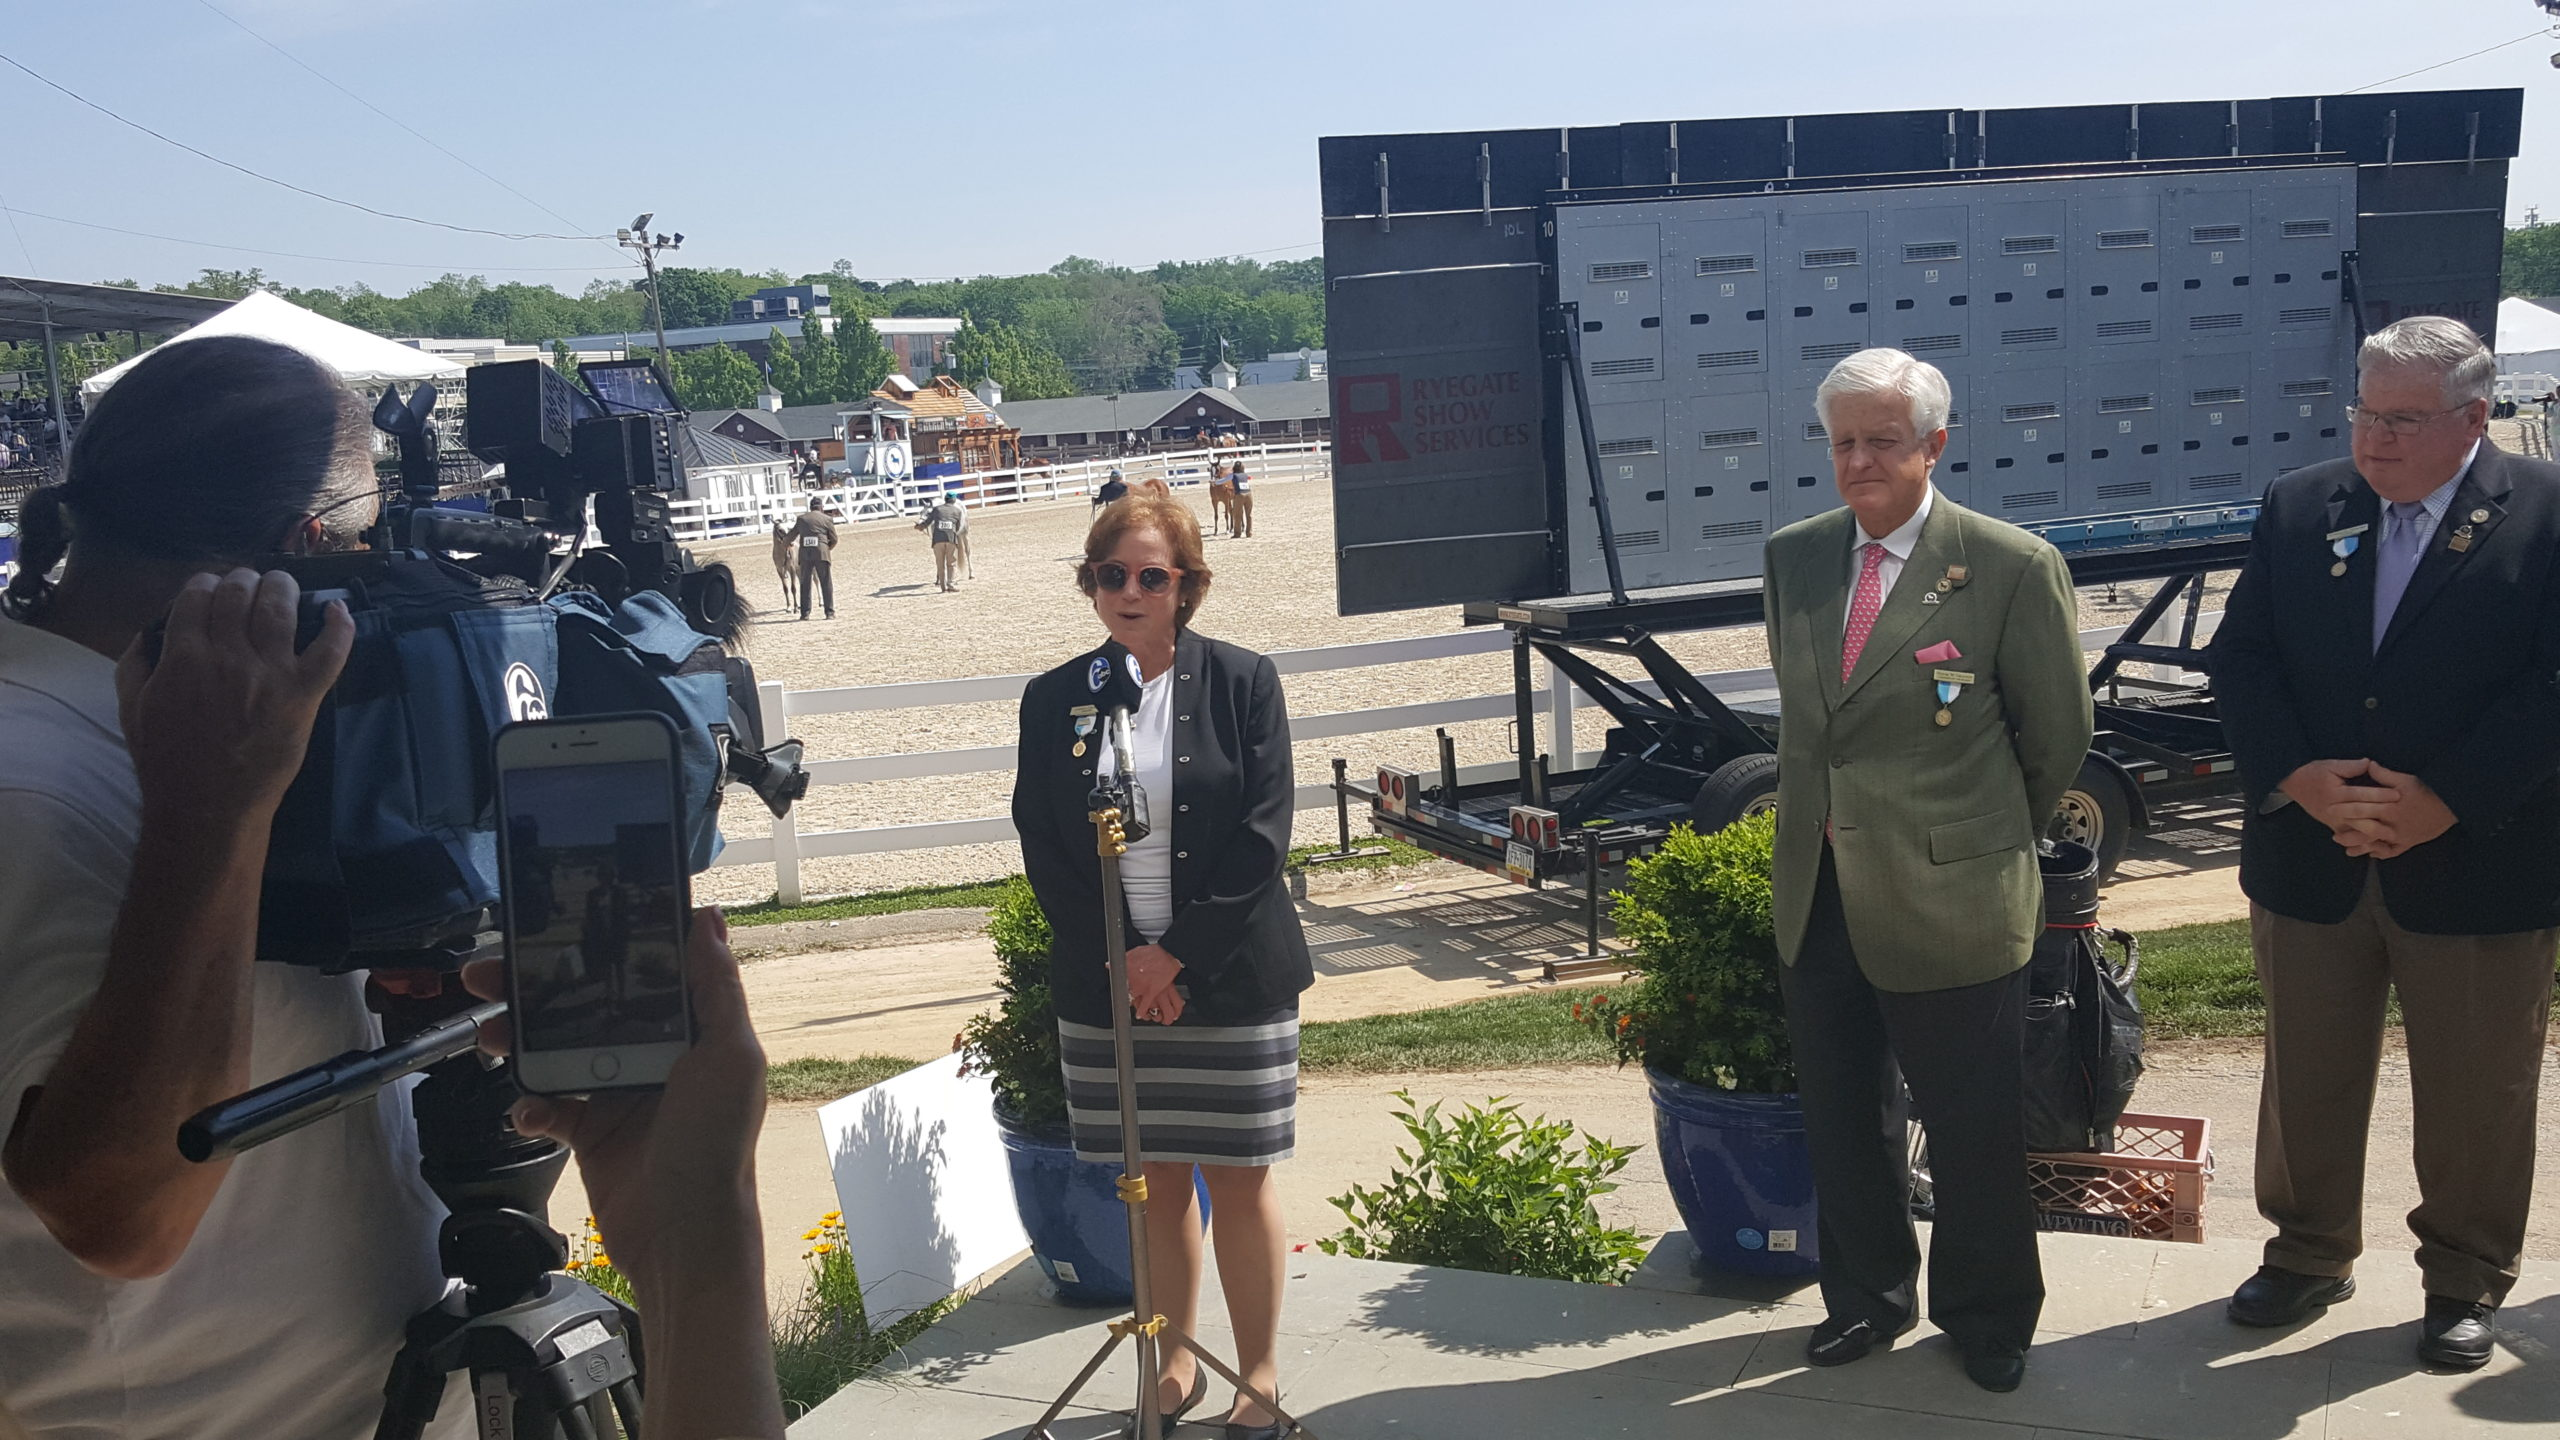 120-Year-Old Devon Horse Show Gives Bryn Mawr Hospital Biggest Gift Ever